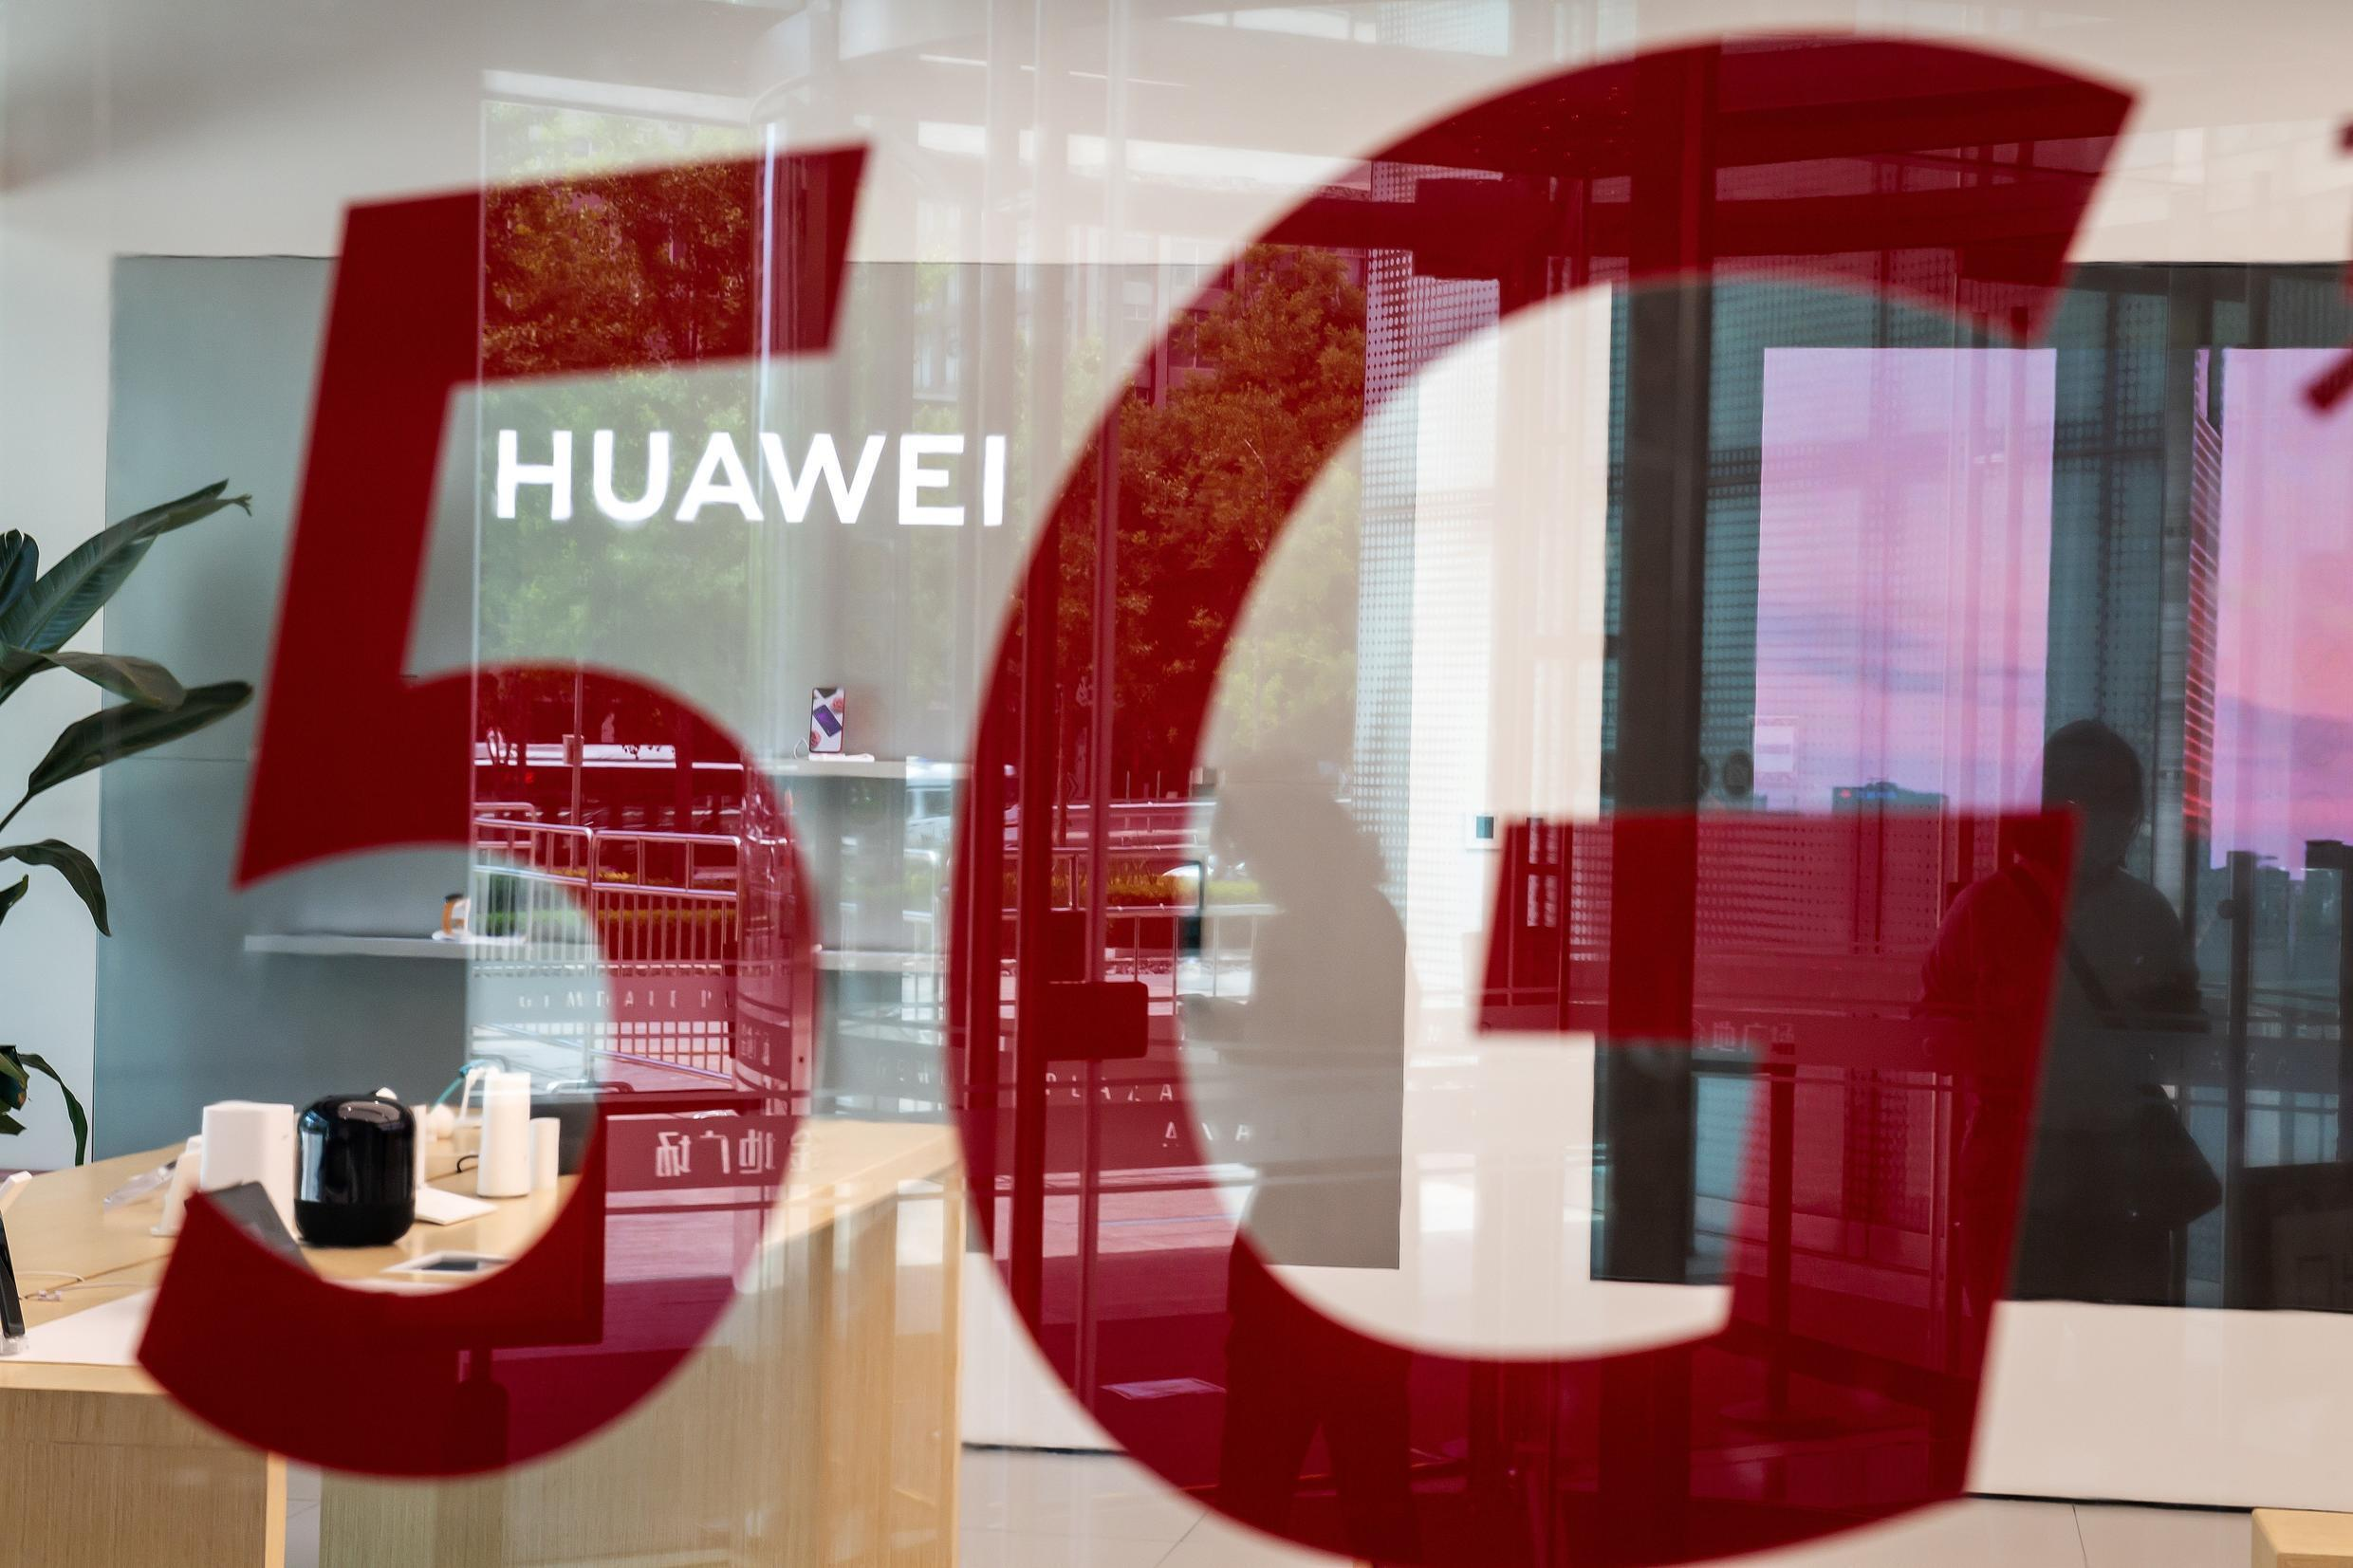 Huawei's 5G equipment is said to be both better and cheaper than the competition